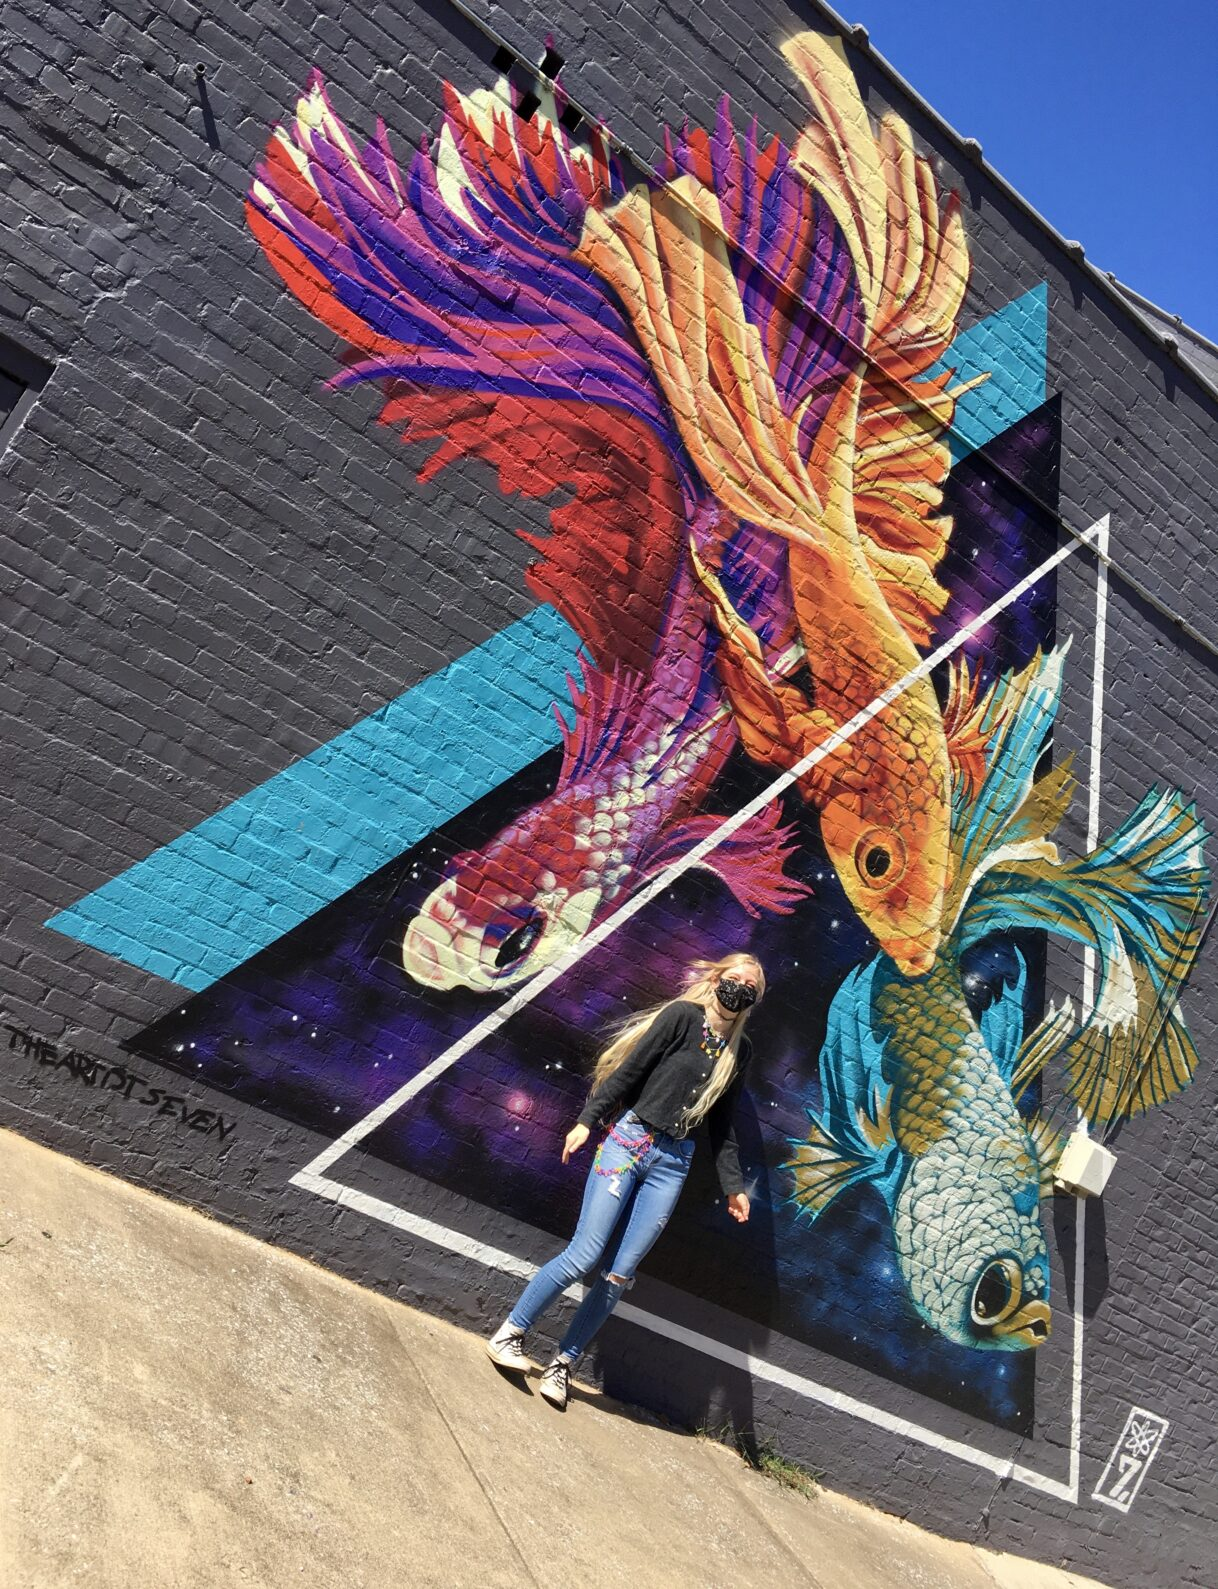 Dimensional Evolution by The Artist Seven – Chattanooga, Tennessee – 10/14/2020